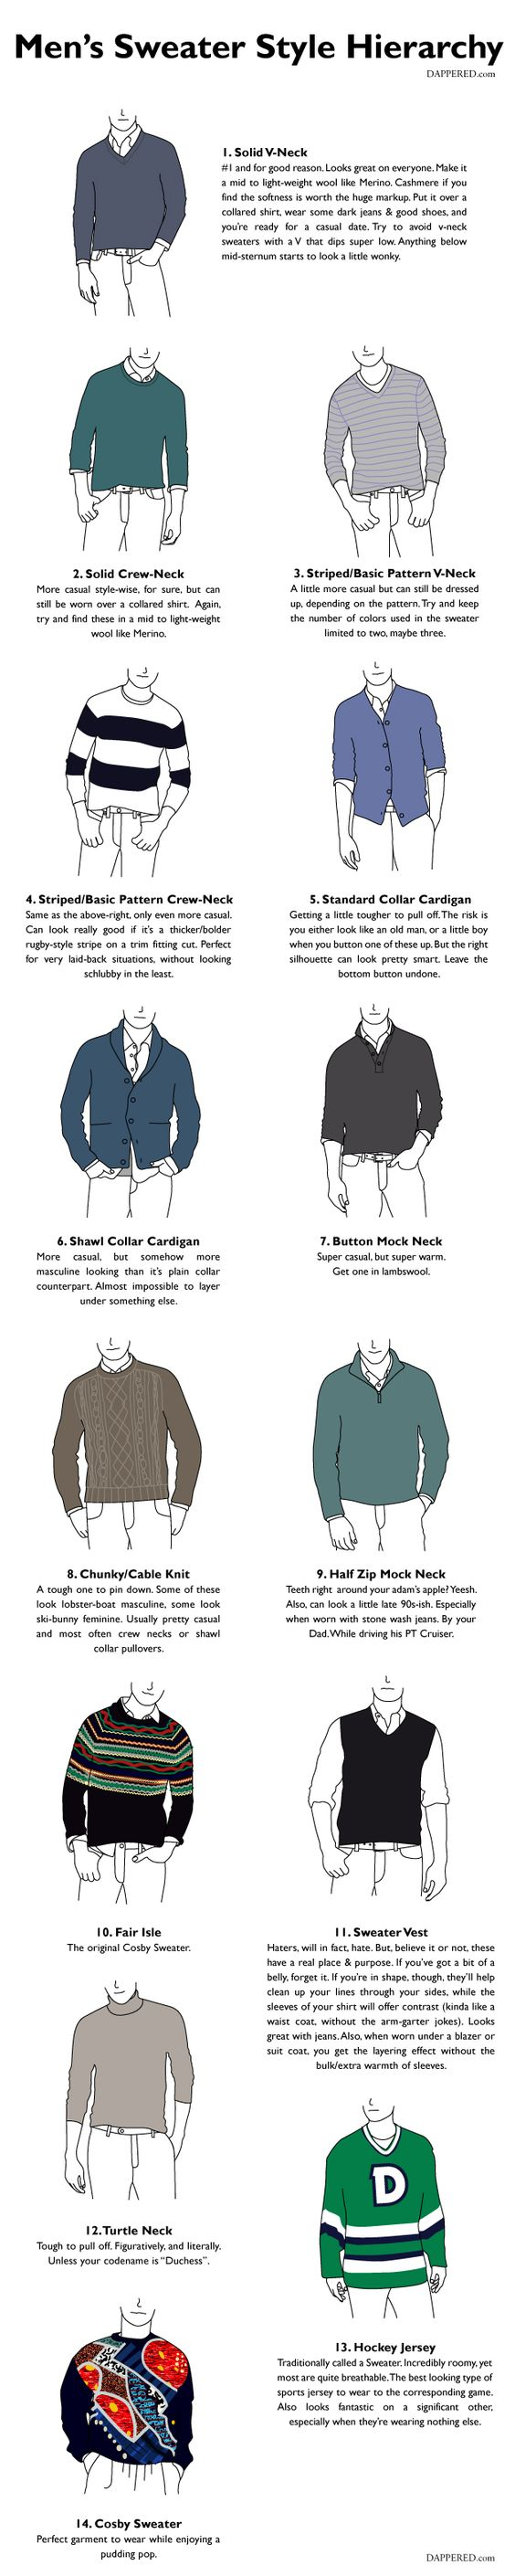 how to wear sweaters infographic